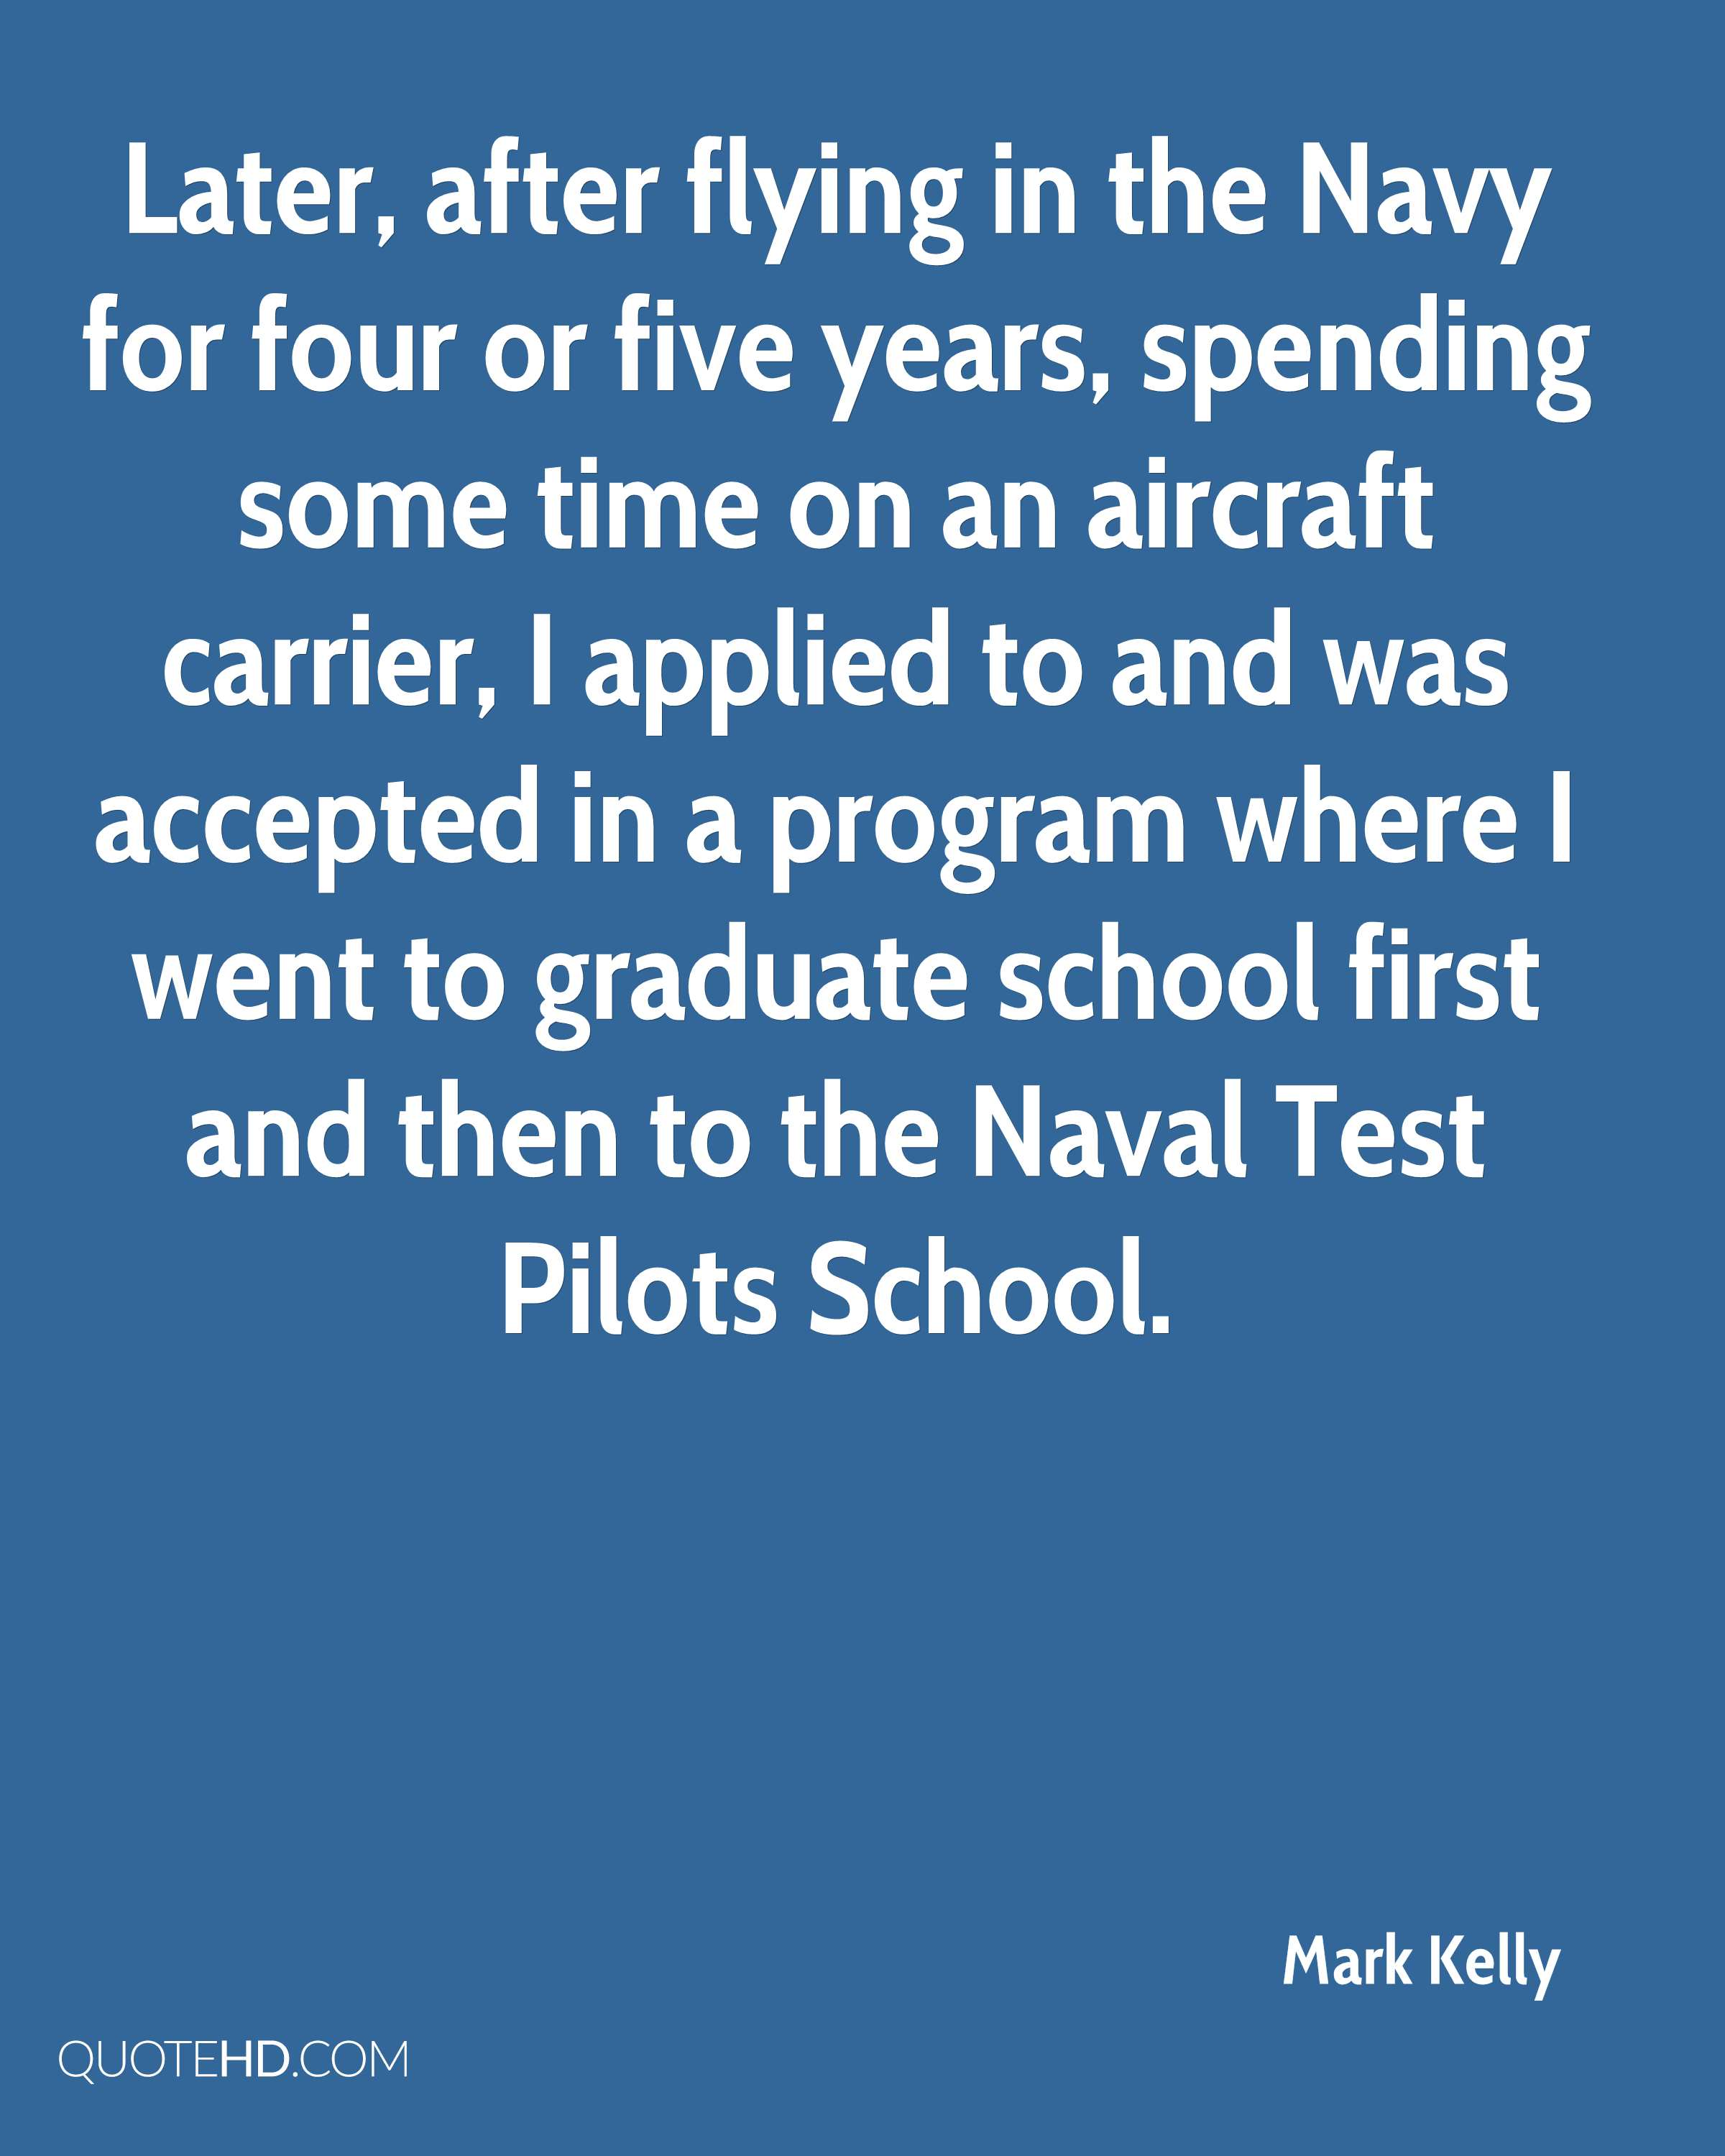 Later, after flying in the Navy for four or five years, spending some time on an aircraft carrier, I applied to and was accepted in a program where I went to graduate school first and then to the Naval Test Pilots School.